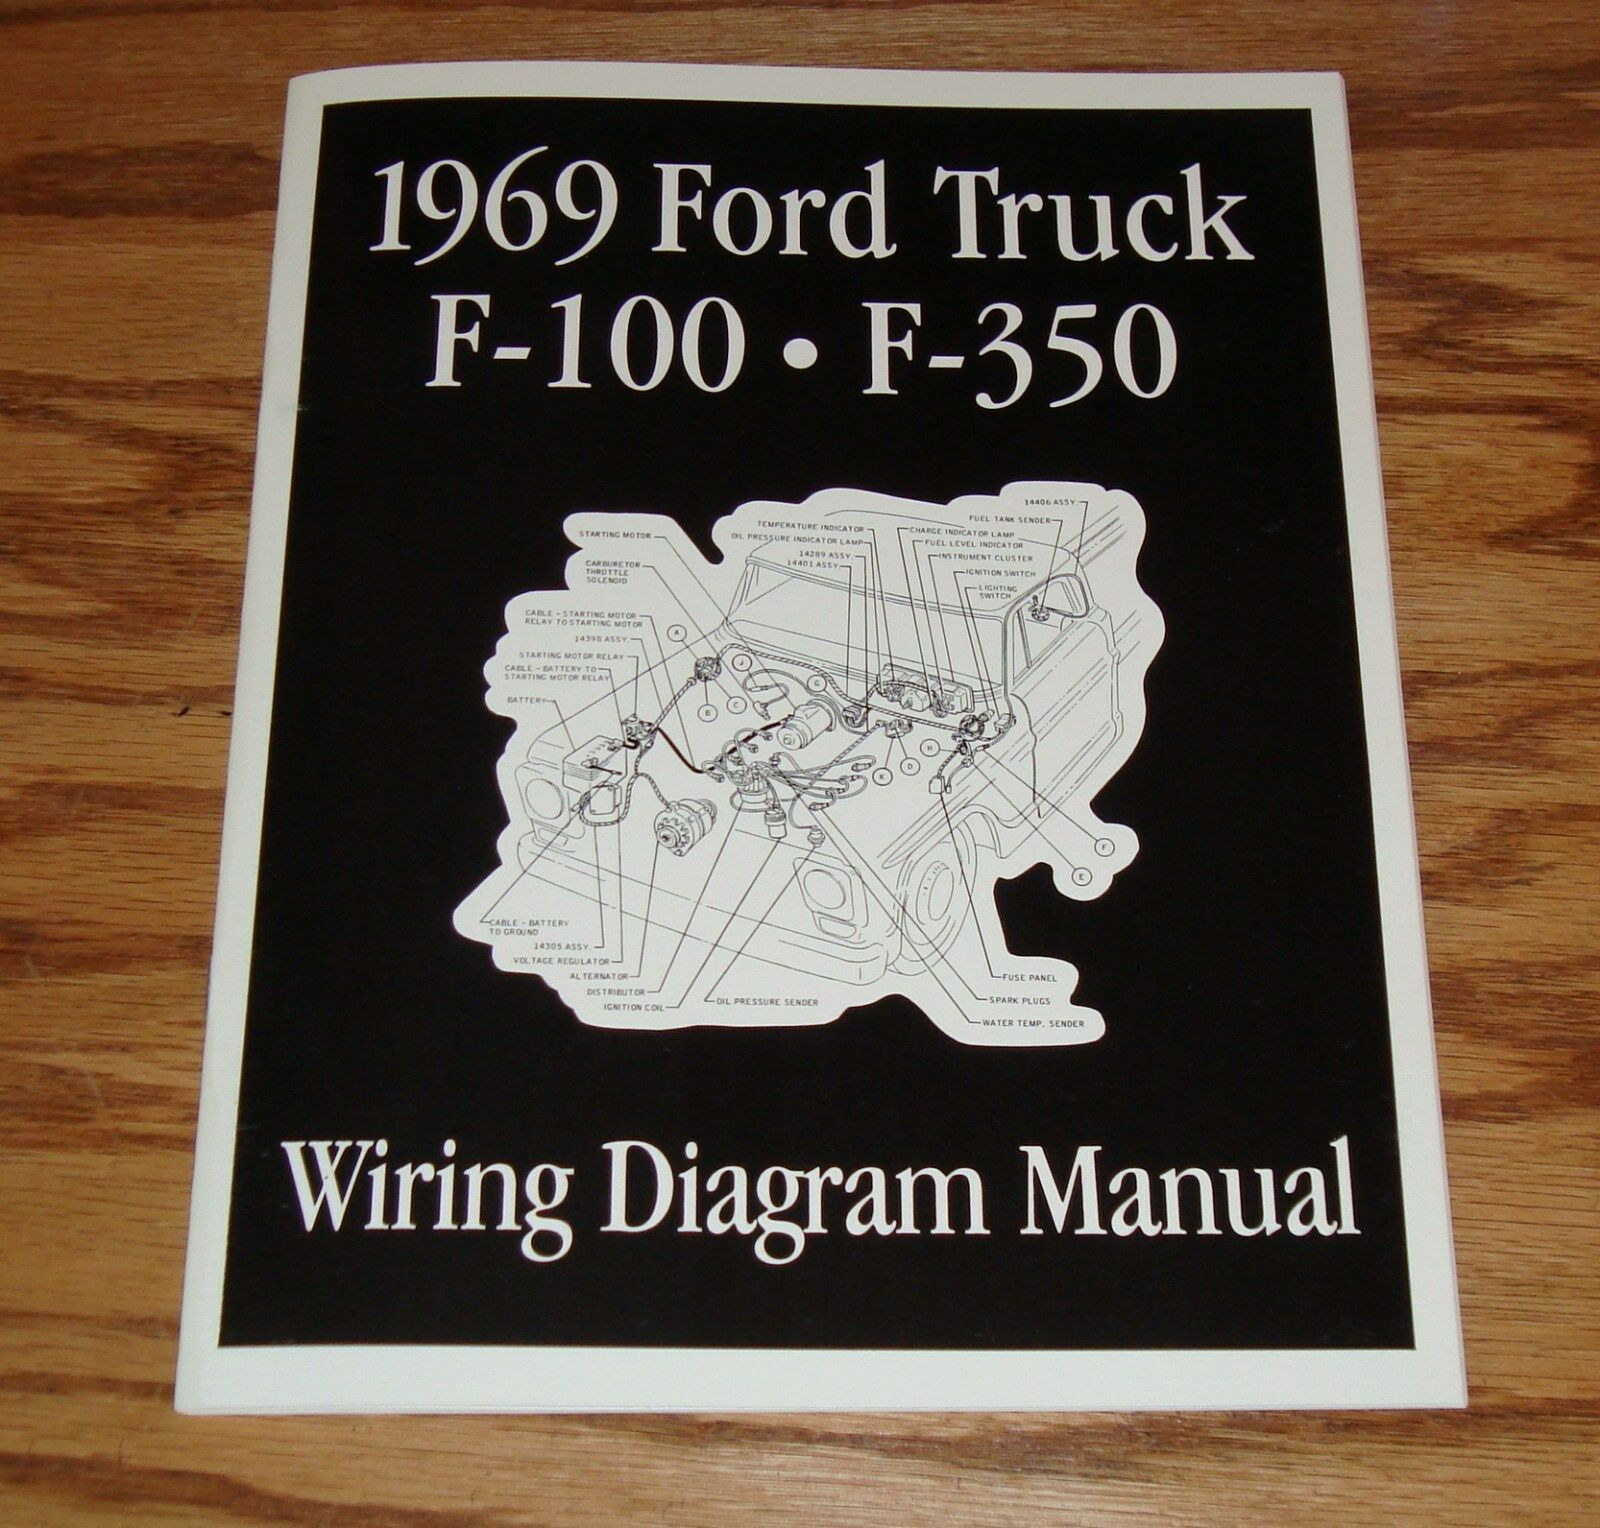 hight resolution of 1969 ford truck f100 f350 wiring diagram manual brochure 69 pickup